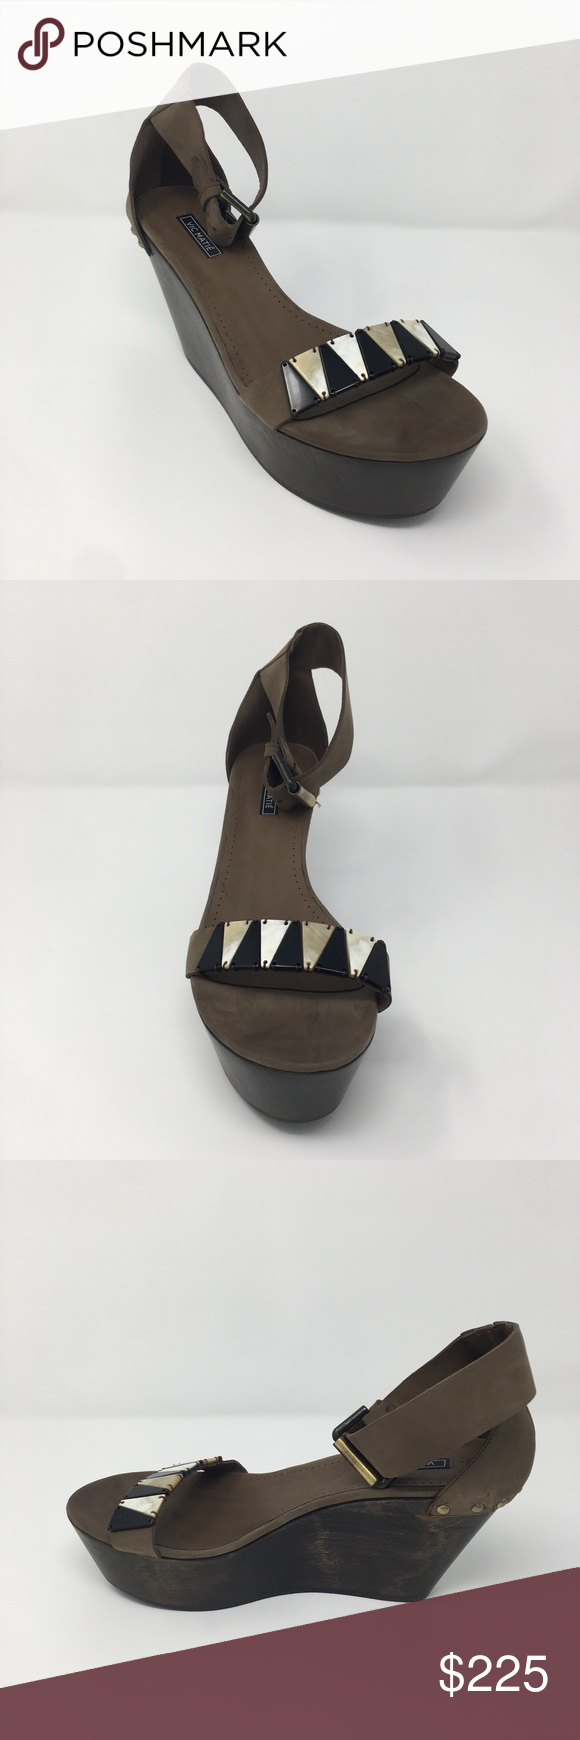 bed237e8be4 Vic Matie Malawi Wedge Trendy Highs Malawi sandals from Calypso with shell  front detailing. Cool nomadic style. BRAND NEW SIZE 10 Vic Matie Shoes  Wedges